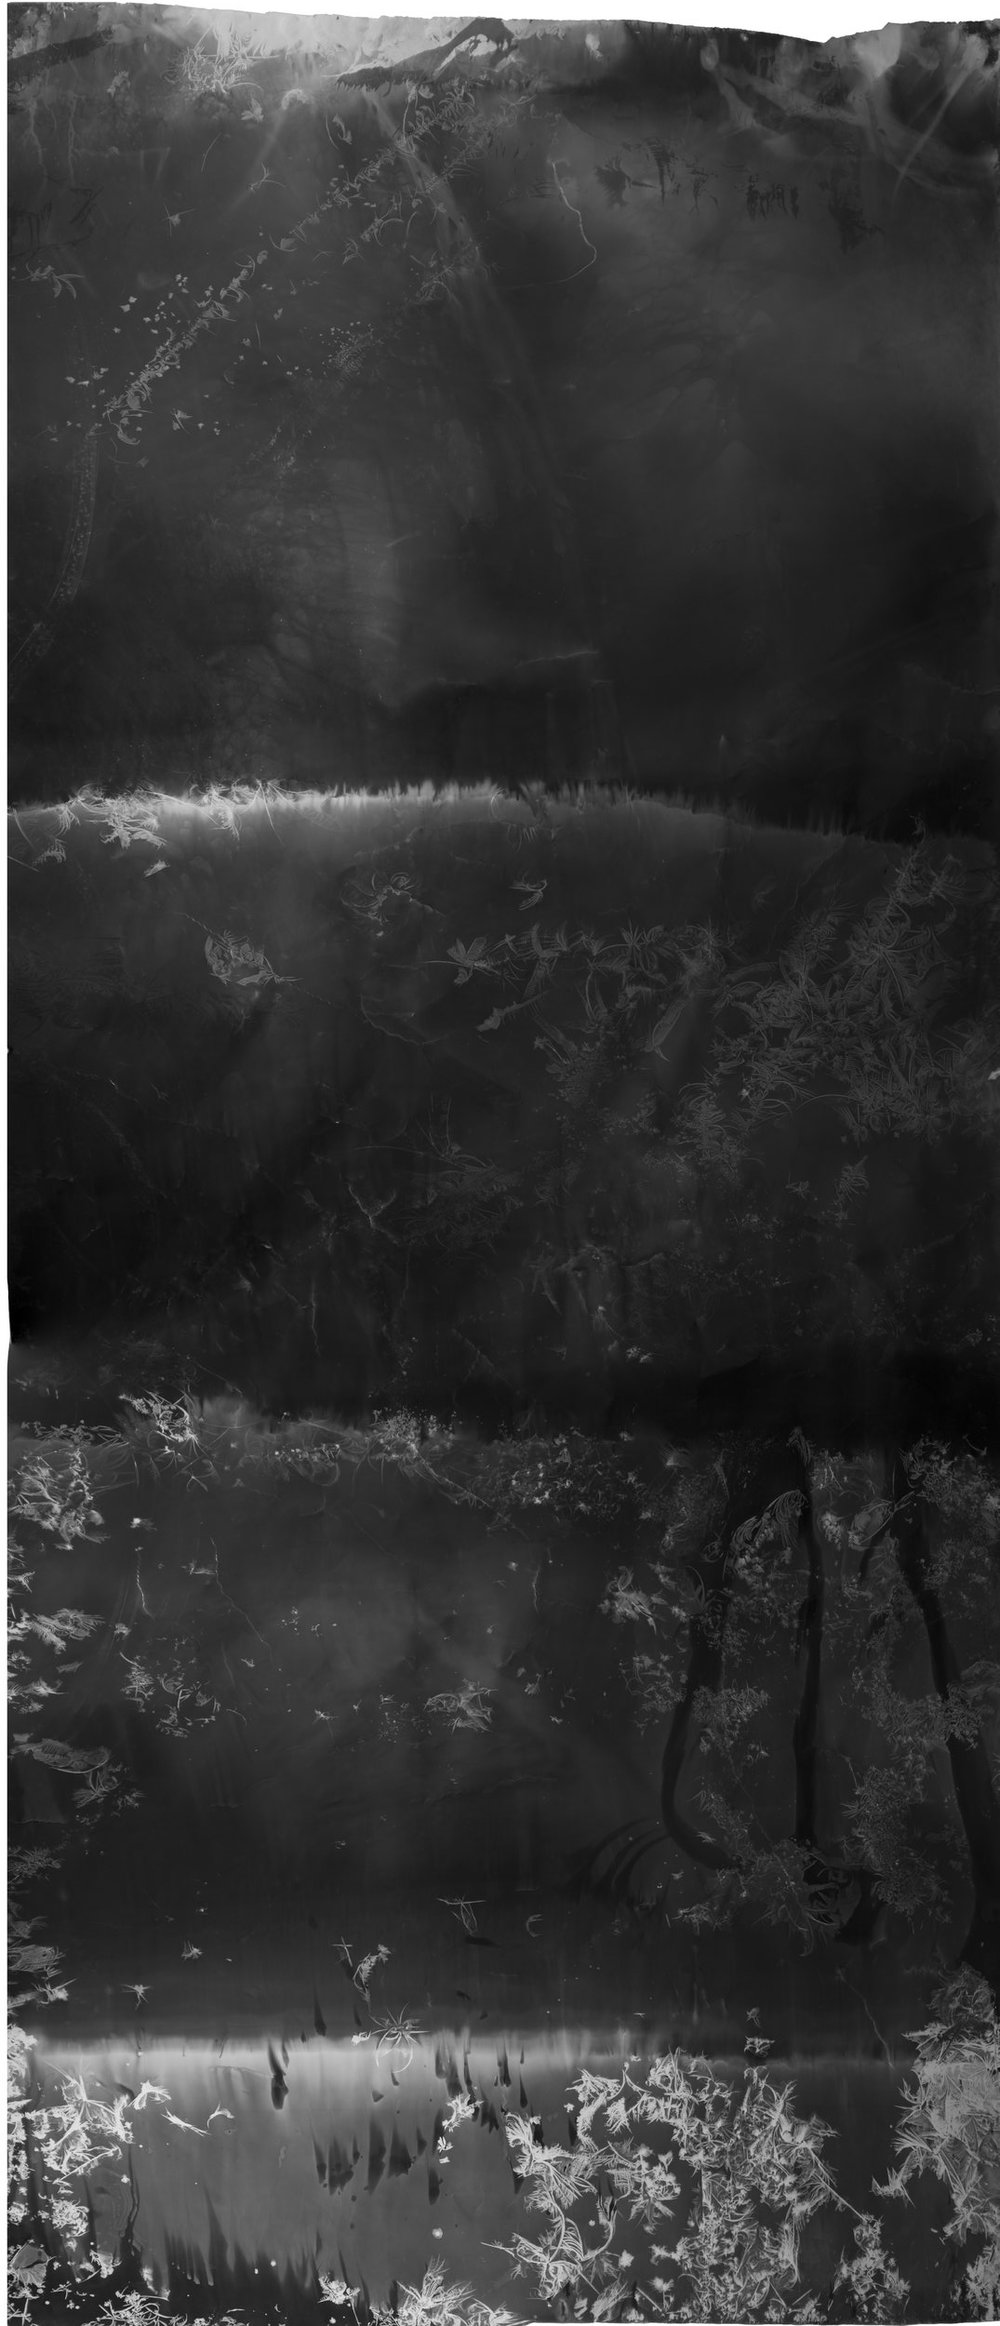 Flashed Waterfall , 2017, 8.66 feet x 3.5 feet, Silver Gelatin Print